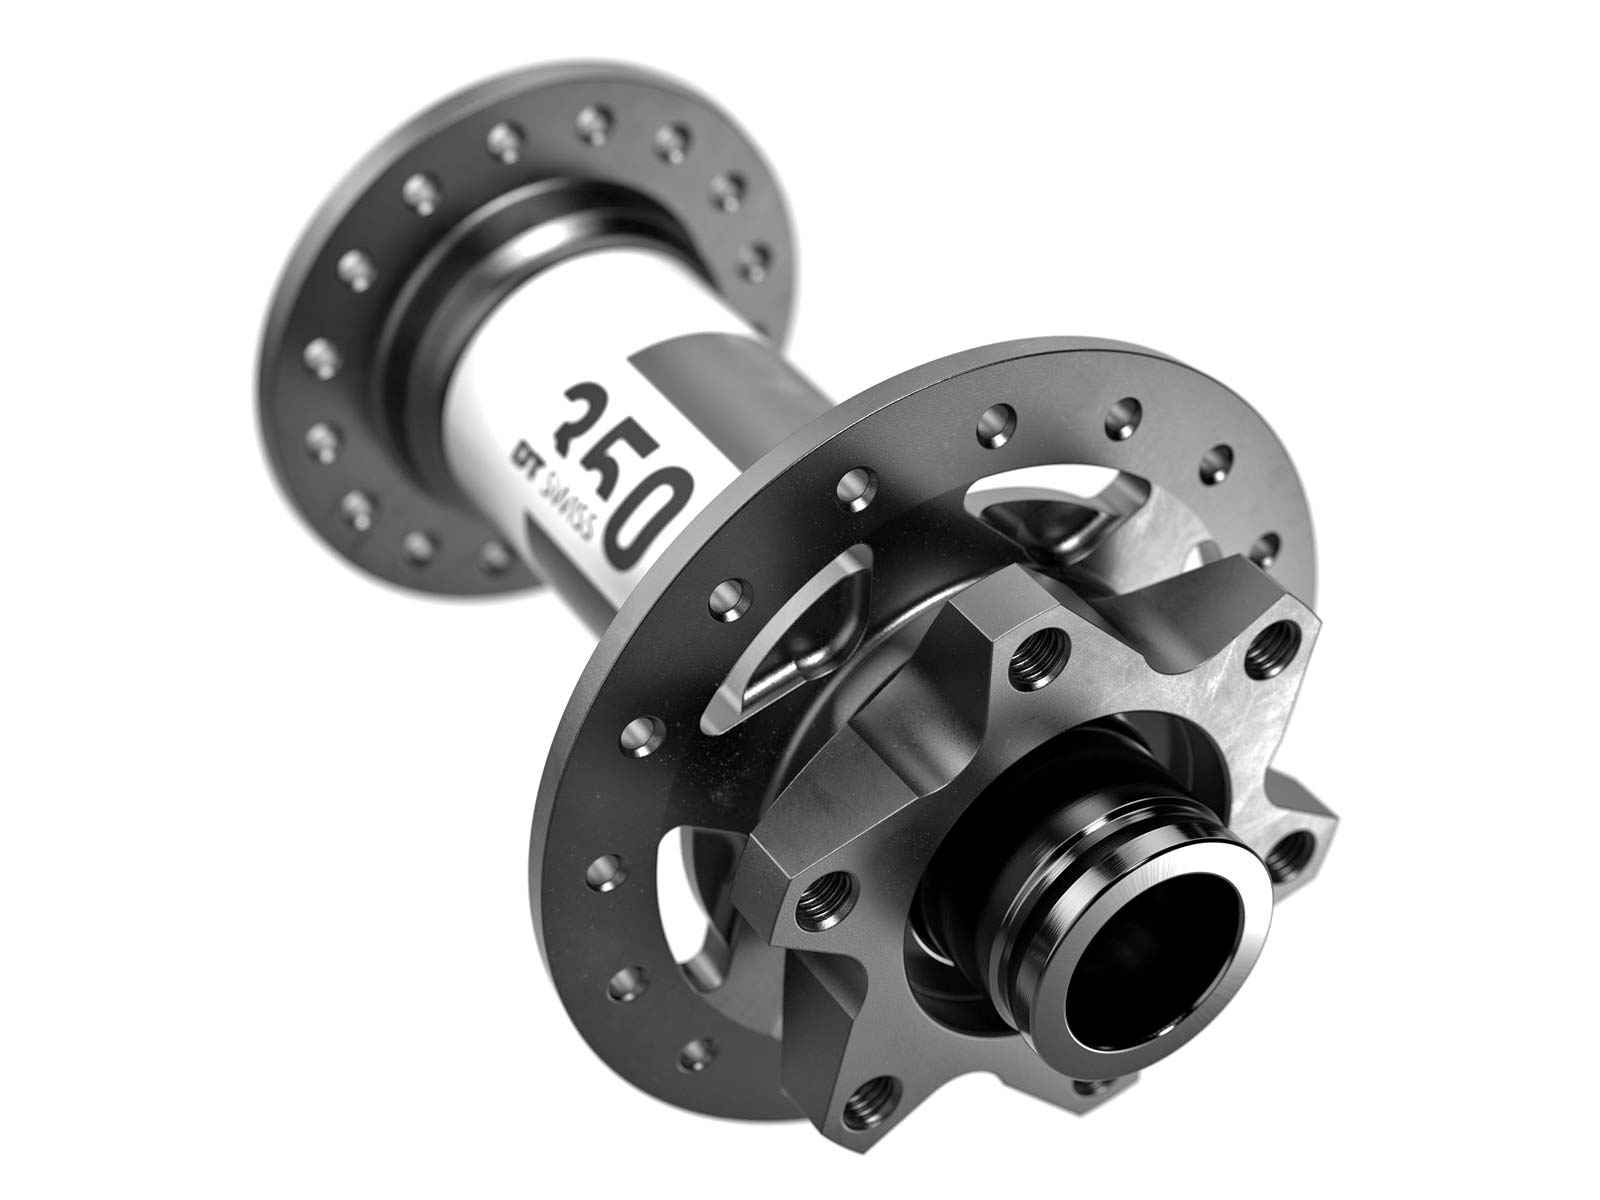 New DT Swiss 350 MTB hubs, lighter faster still affordable 36T Star Ratchet, precise 240-like machining